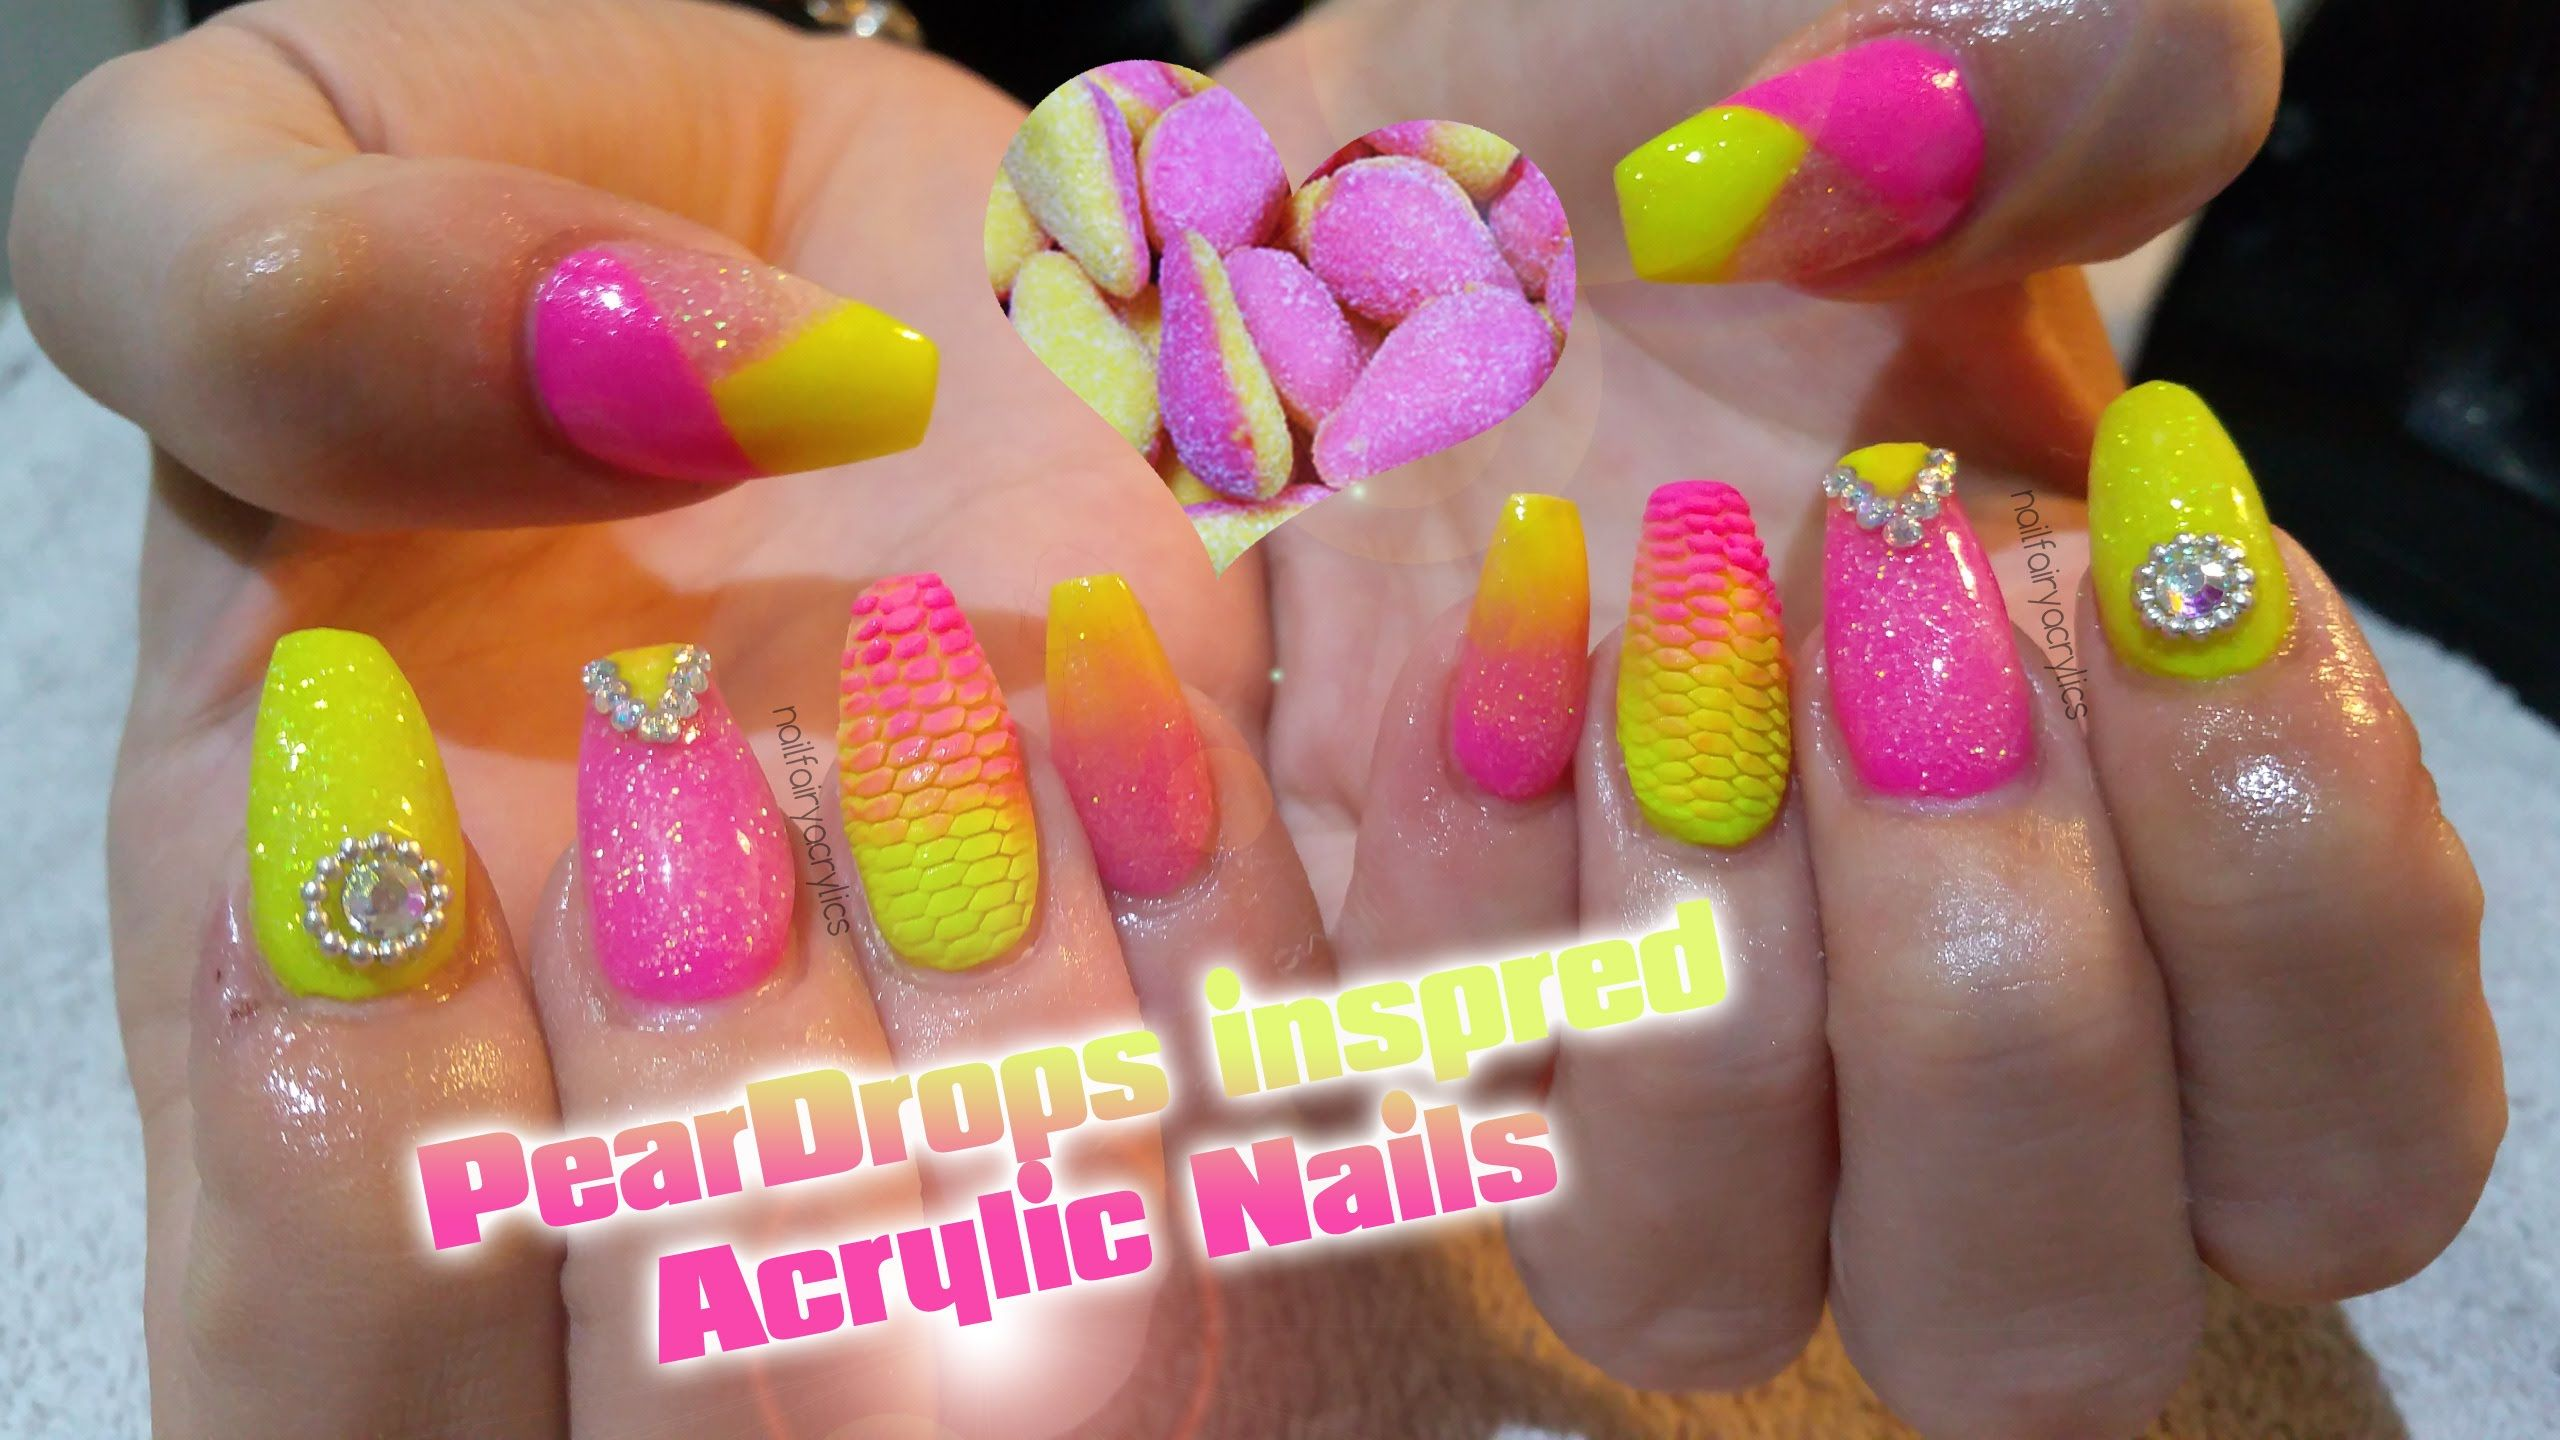 neon nails tumblr - Căutare Google | Neon Nails ❤ | Pinterest ...